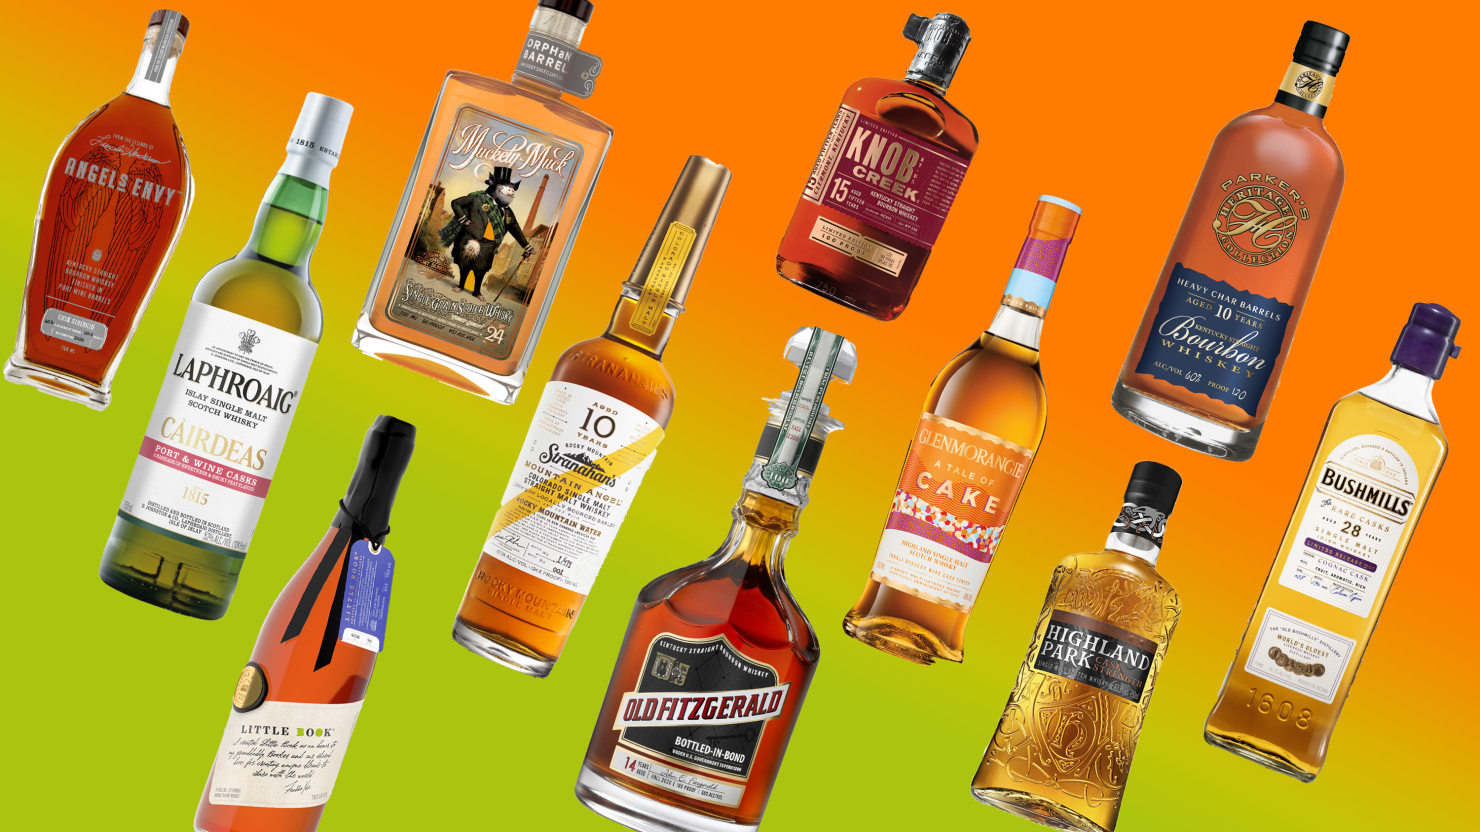 Get These Limited-Edition Whiskies Before They Sell Out